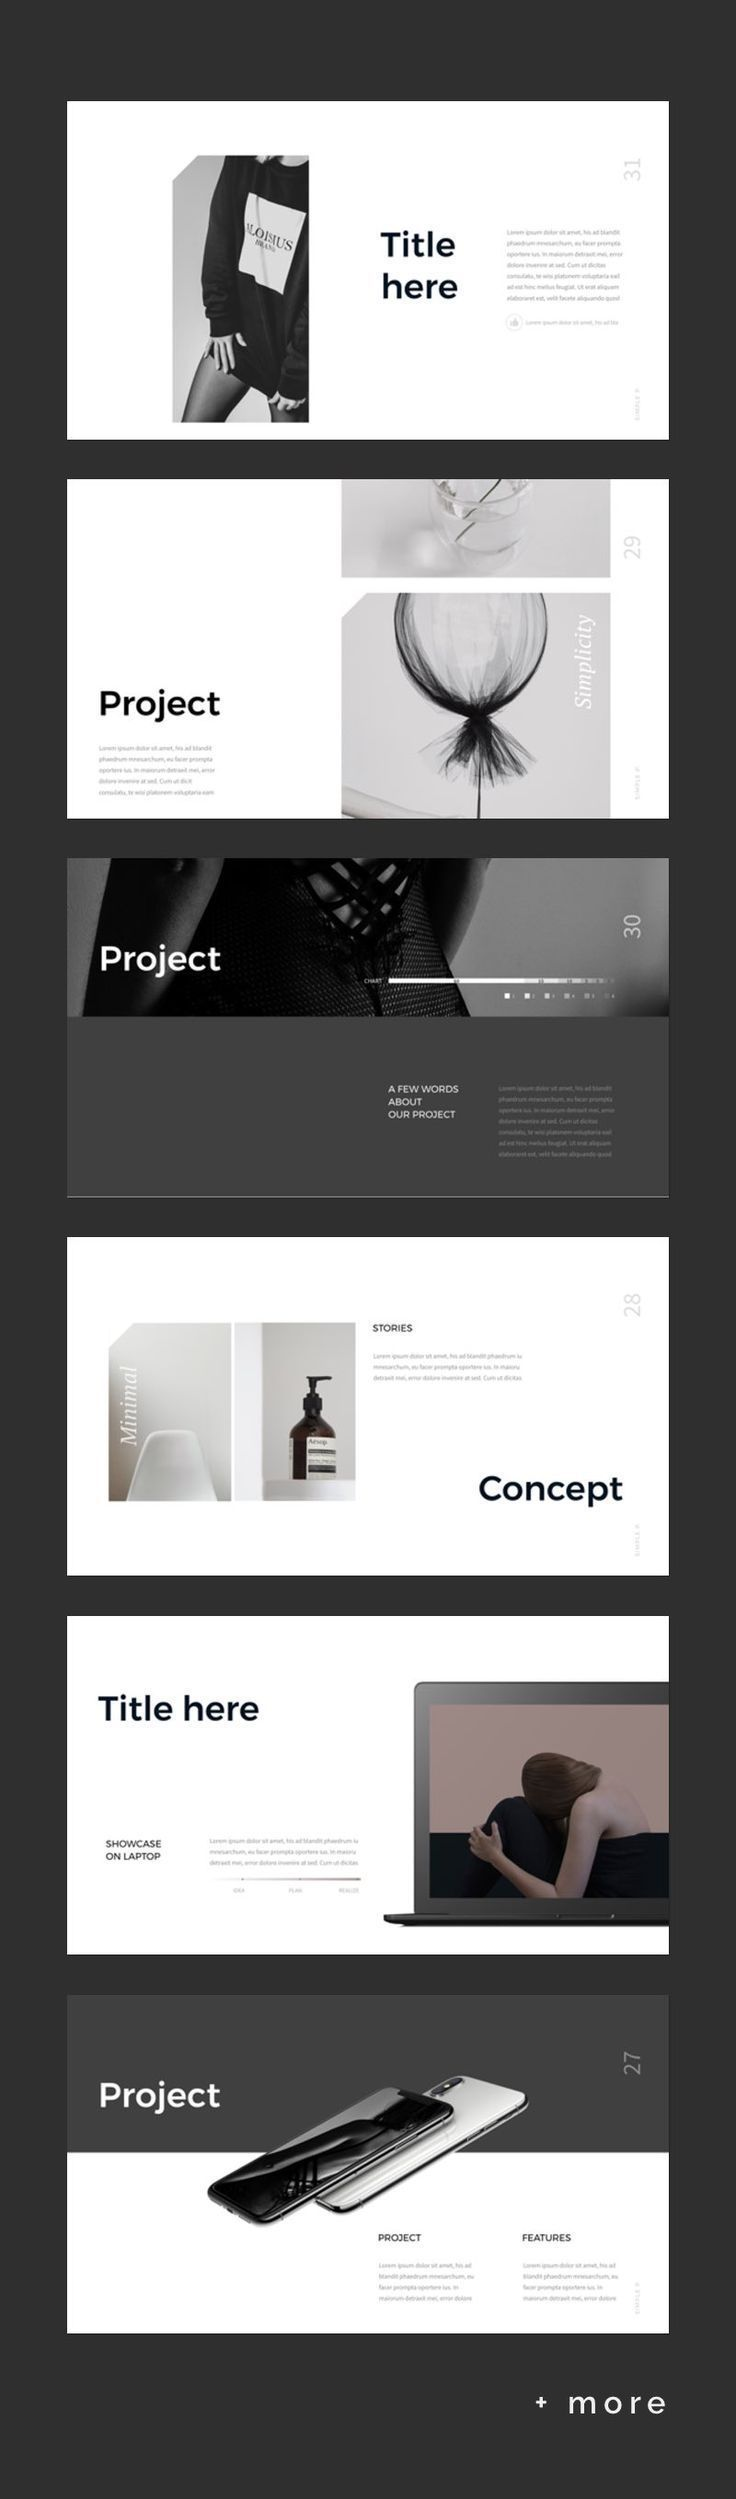 best type layout u graphic design images on pinterest charts